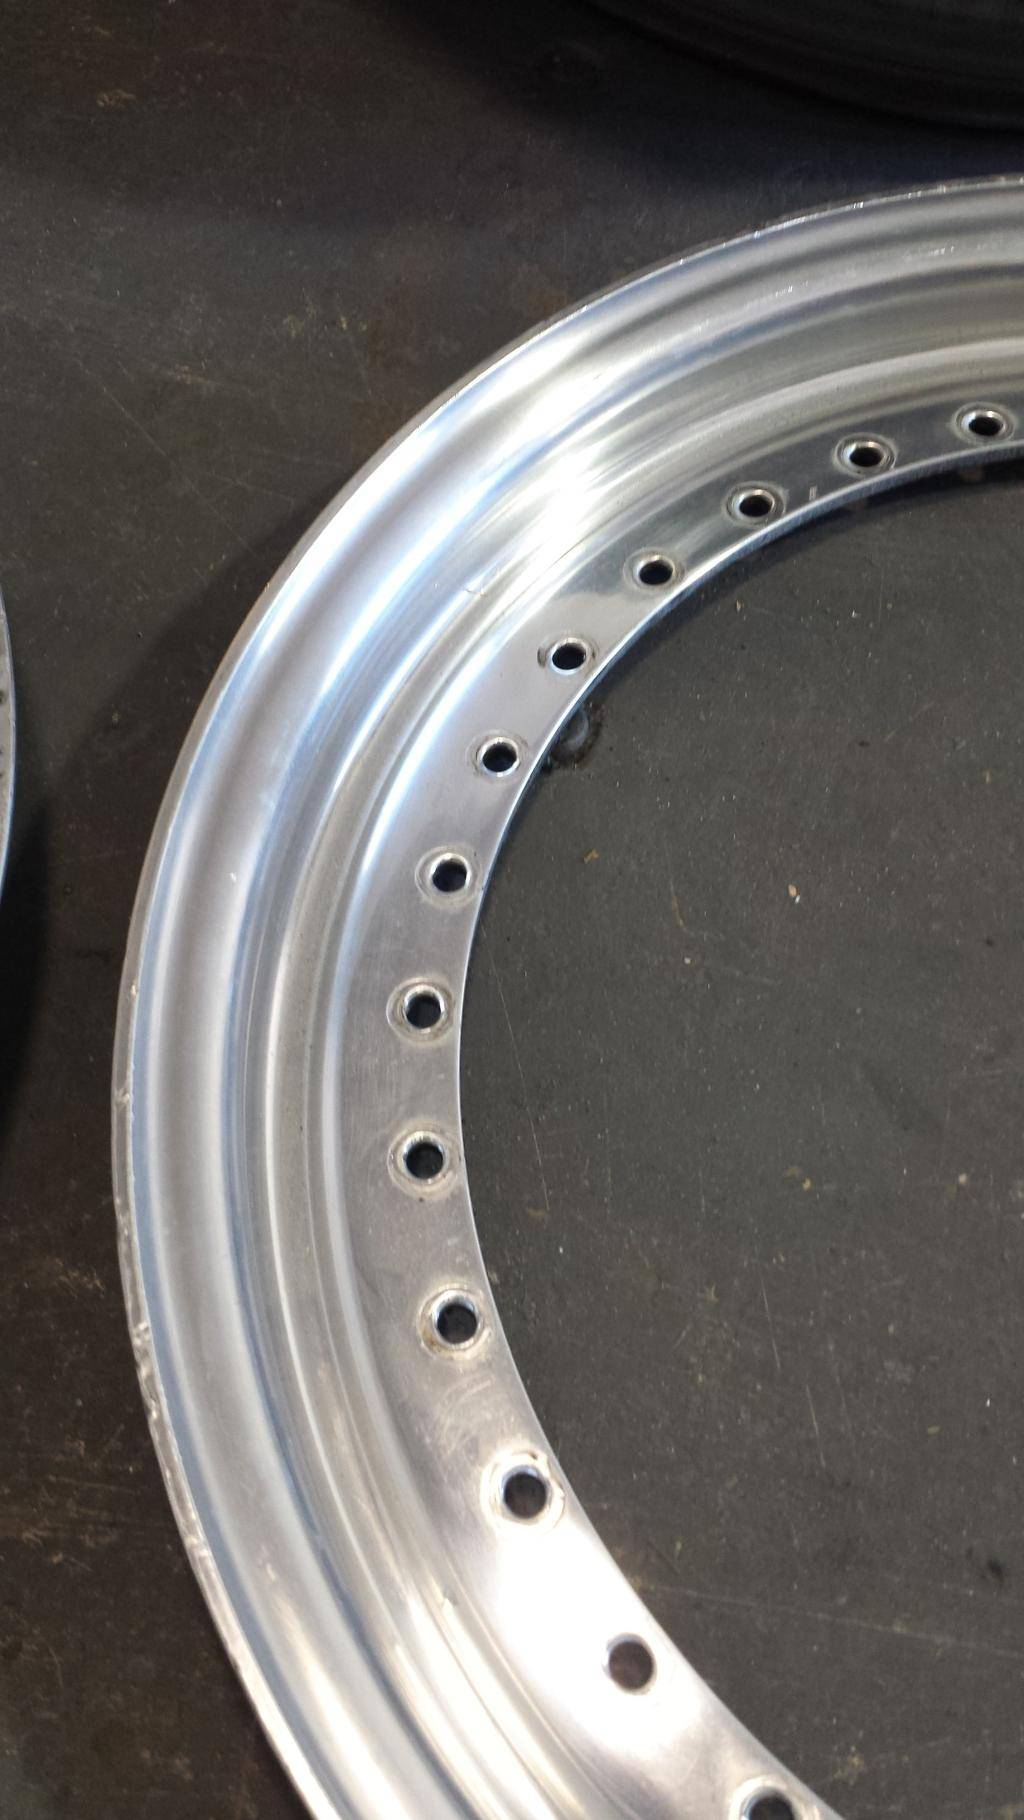 "17"" OEM OZ Lips & Barrels - 35 hole 20150211_130659_zpstkjojc4k"